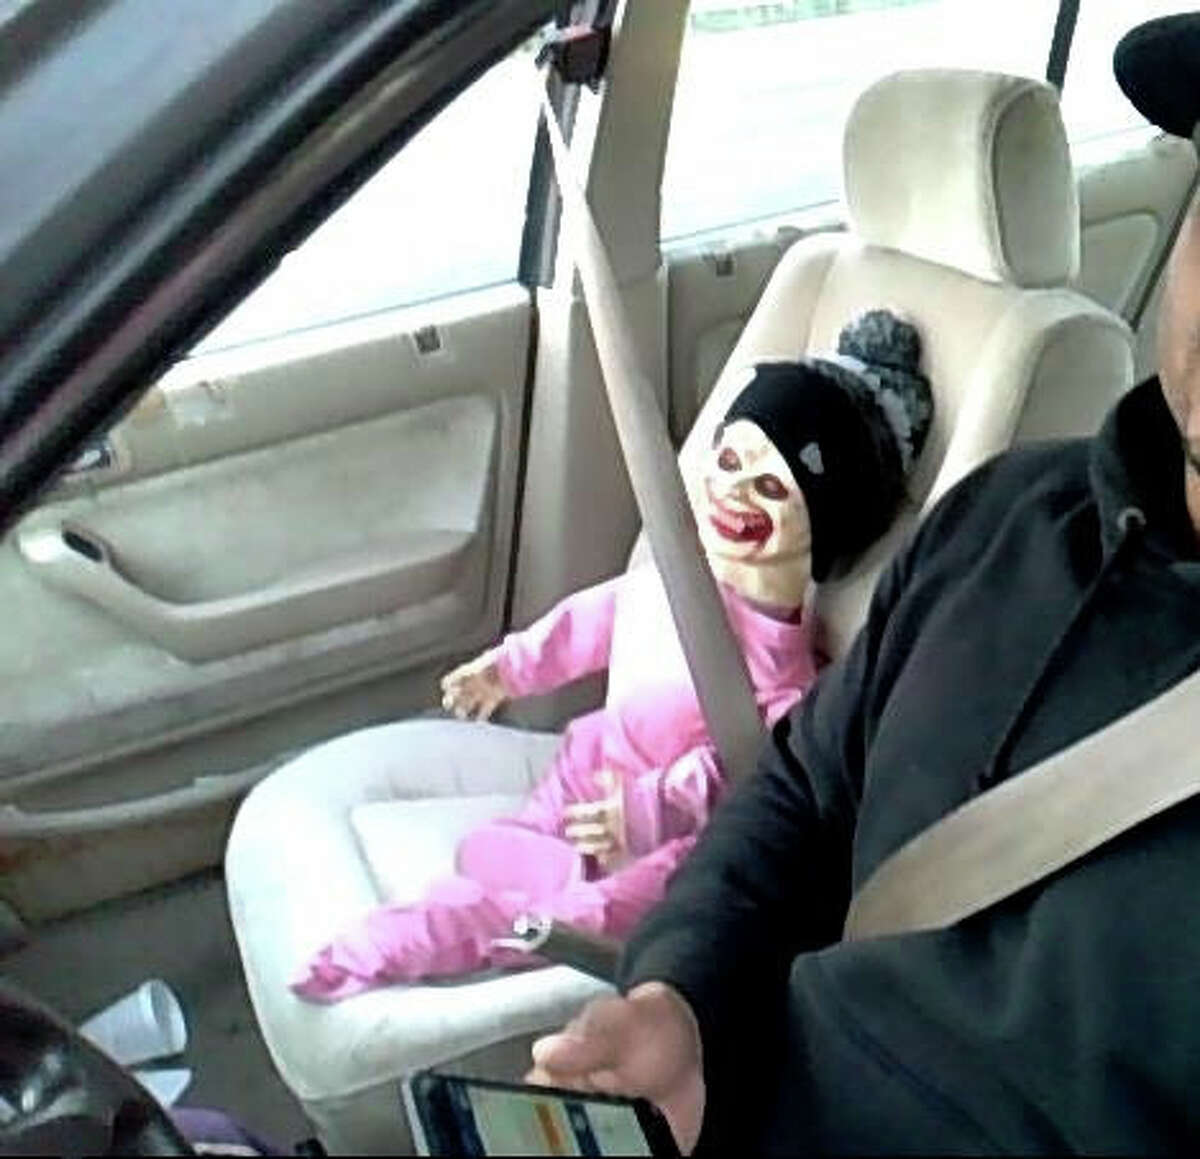 This photo provided by Washington State Patrol shows a Halloween doll buckled up in the passenger seat of a car on Oct. 27, 2015 in Tacoma, Wash. During Tuesday's morning commute, a trooper pulled over the man after he tried to use the doll to gain access to the HOV lane of Interstate 5 in Tacoma.